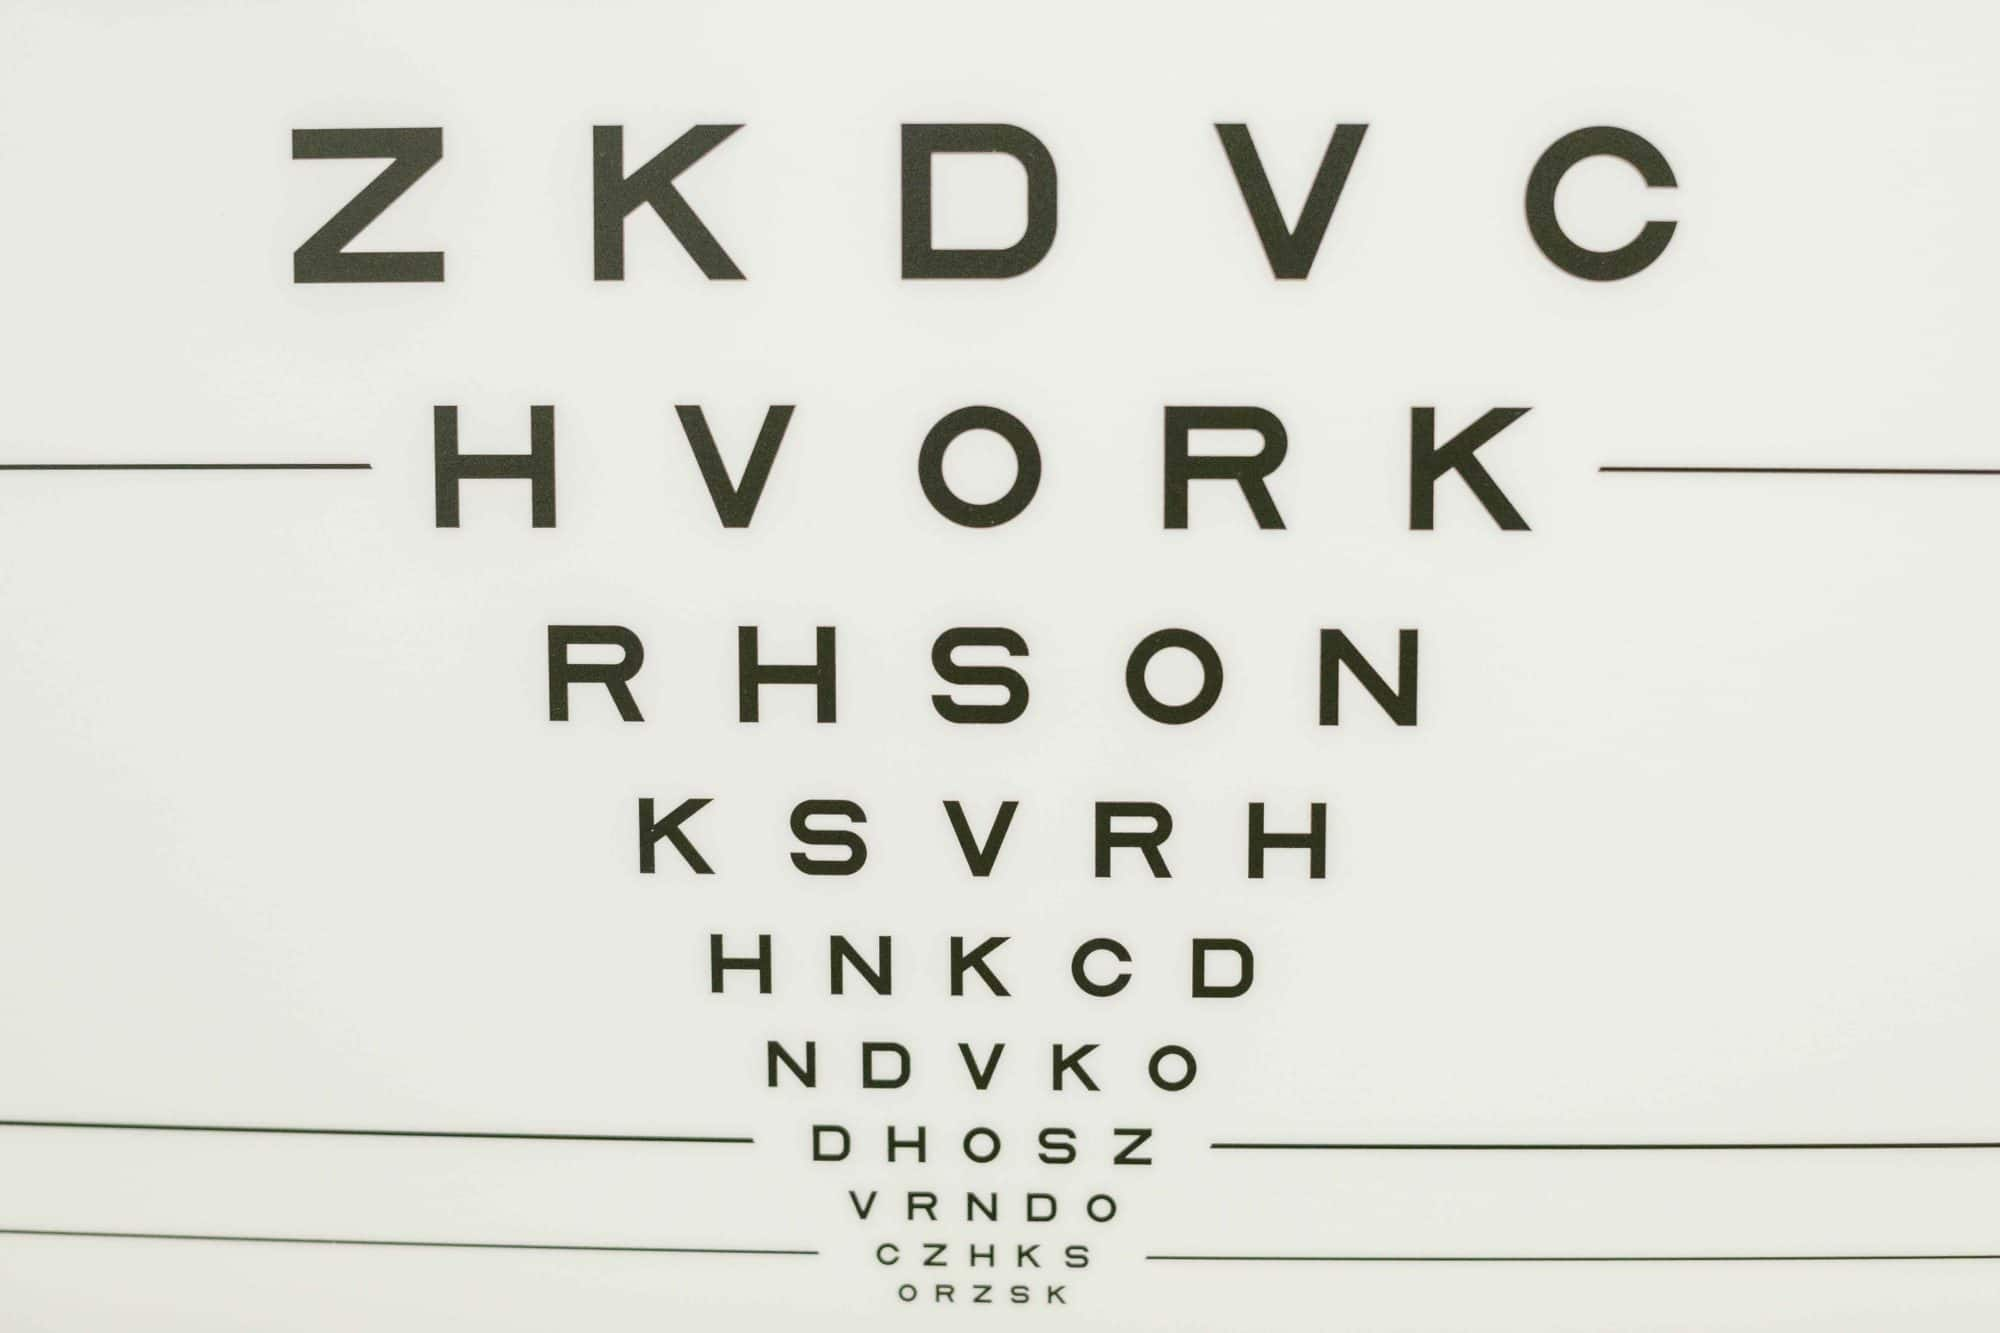 eye chart on wall